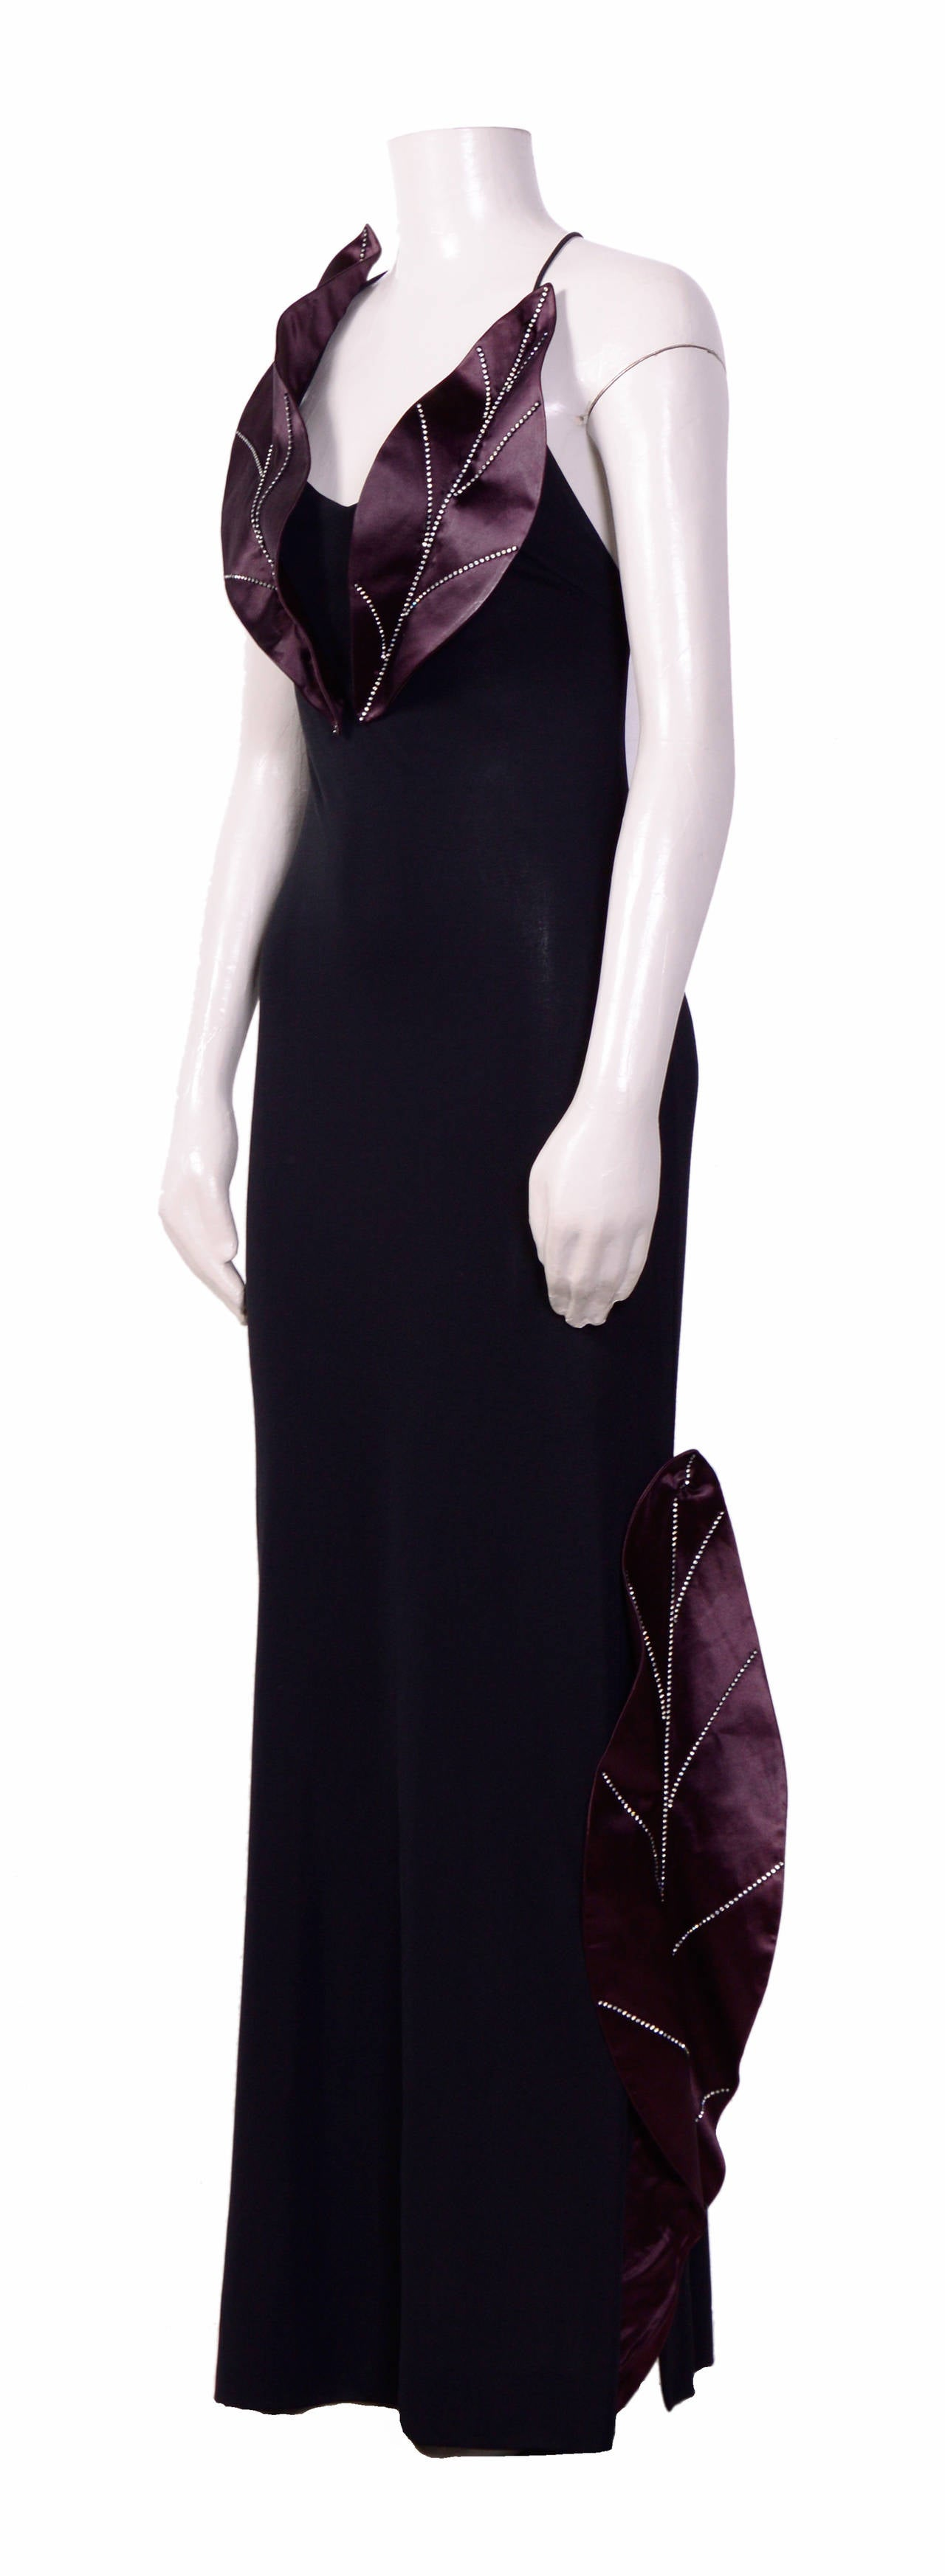 Gorgeous dress by Loris Azzaro. Made in a jersey The label has written 42 /L, this could be the size but please go by measurements are taken flat: Ua to Ua 13inch/33cm - Waist 13inch/33cm(x2) - Hips 17inch/43cm(x2) - Total Length 64inch/163cm